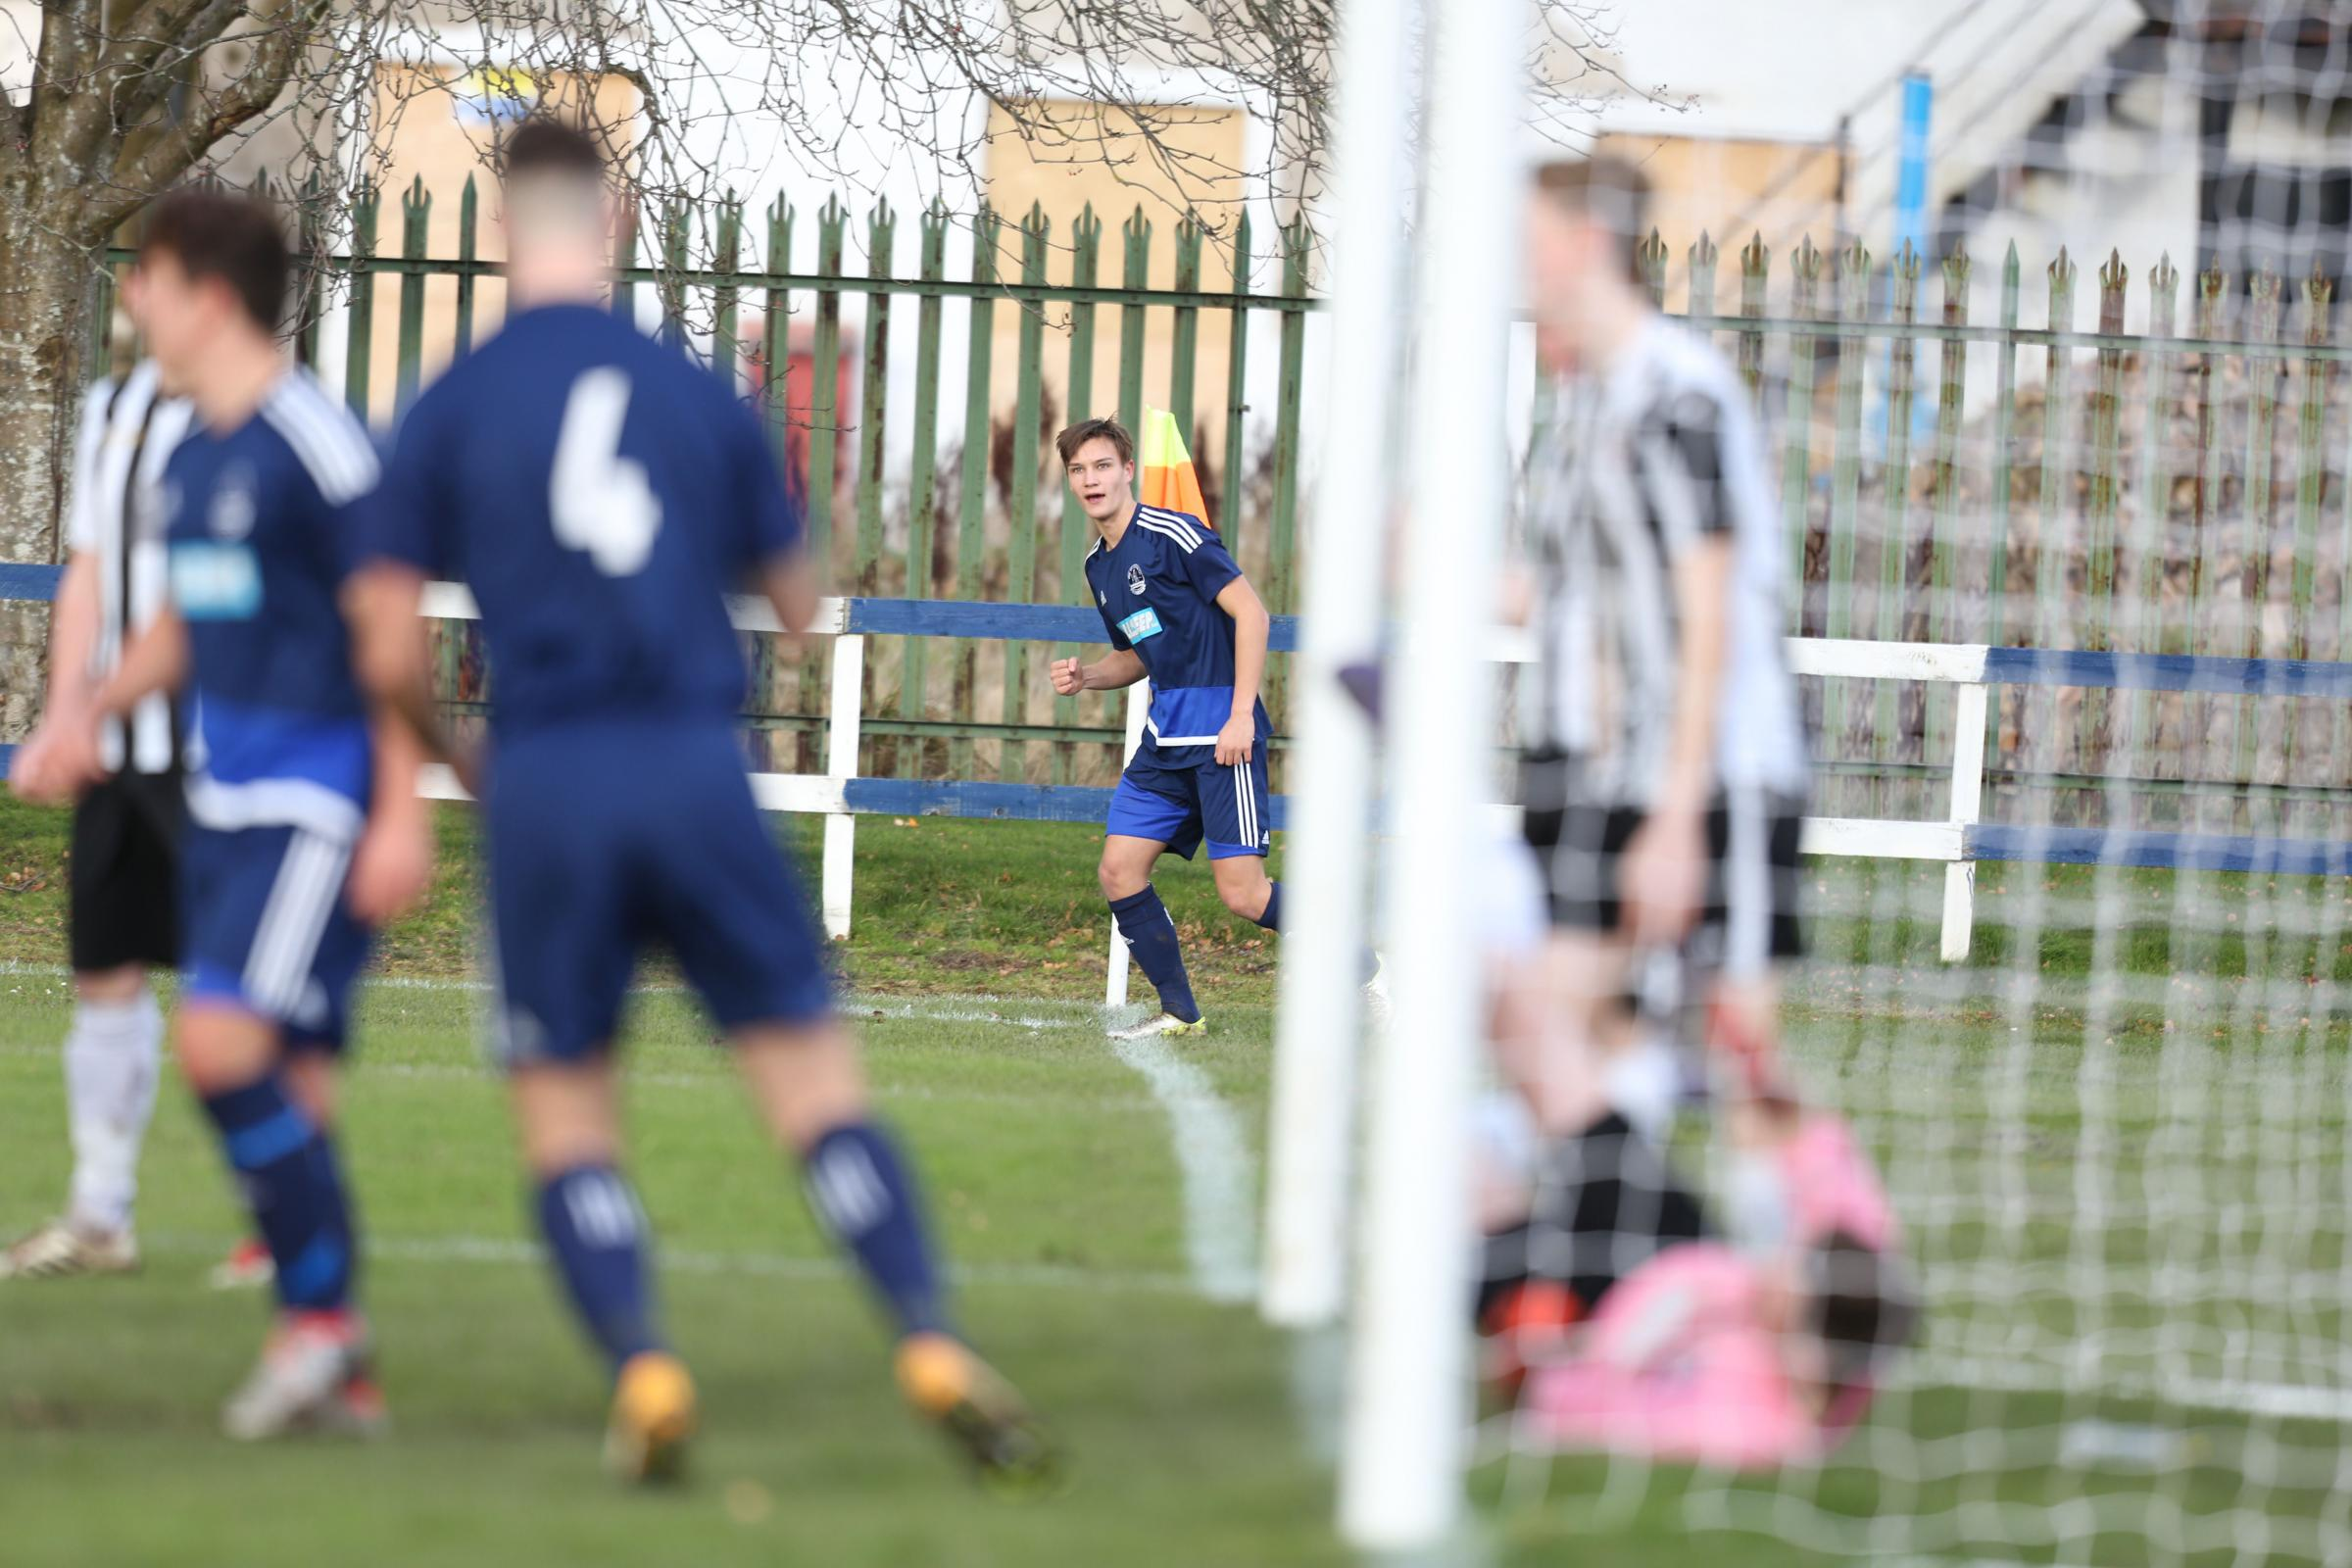 Liall Smith scoring directly from a corner. Photo: Helen Barrington